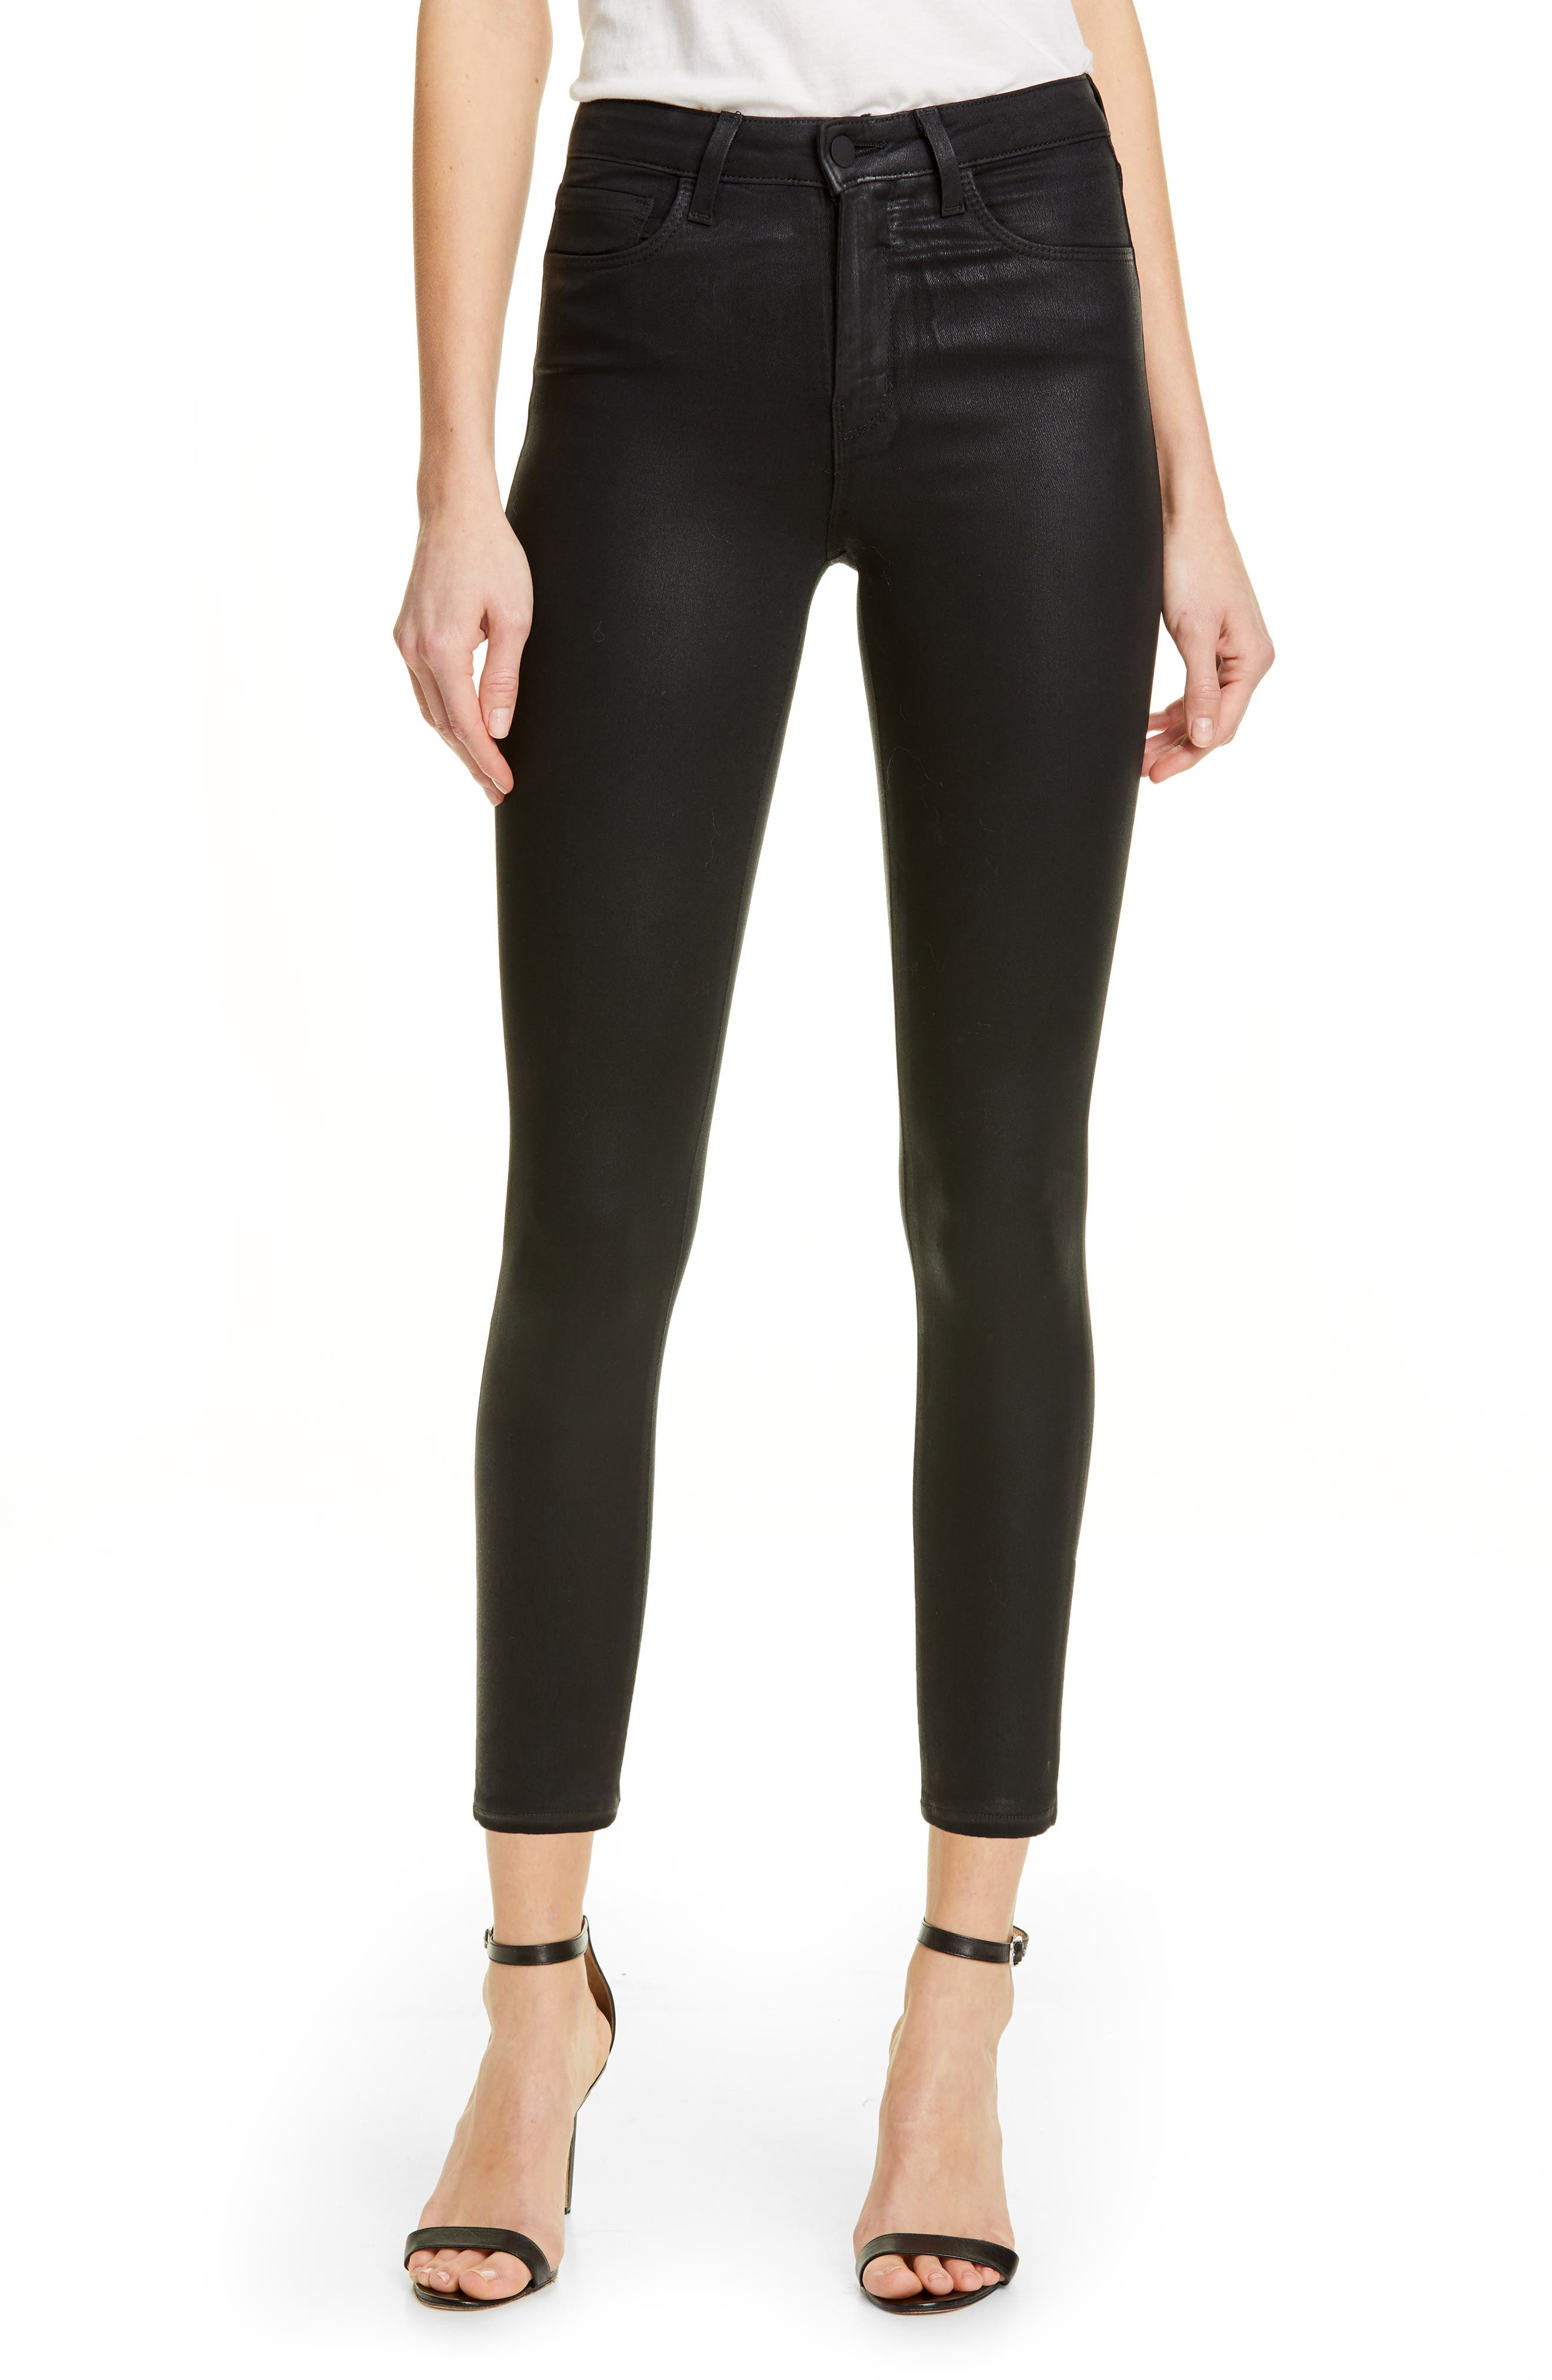 L'AGENCE, Coated High Waist Skinny Jeans, Main thumbnail 1, color, BLACK COATED